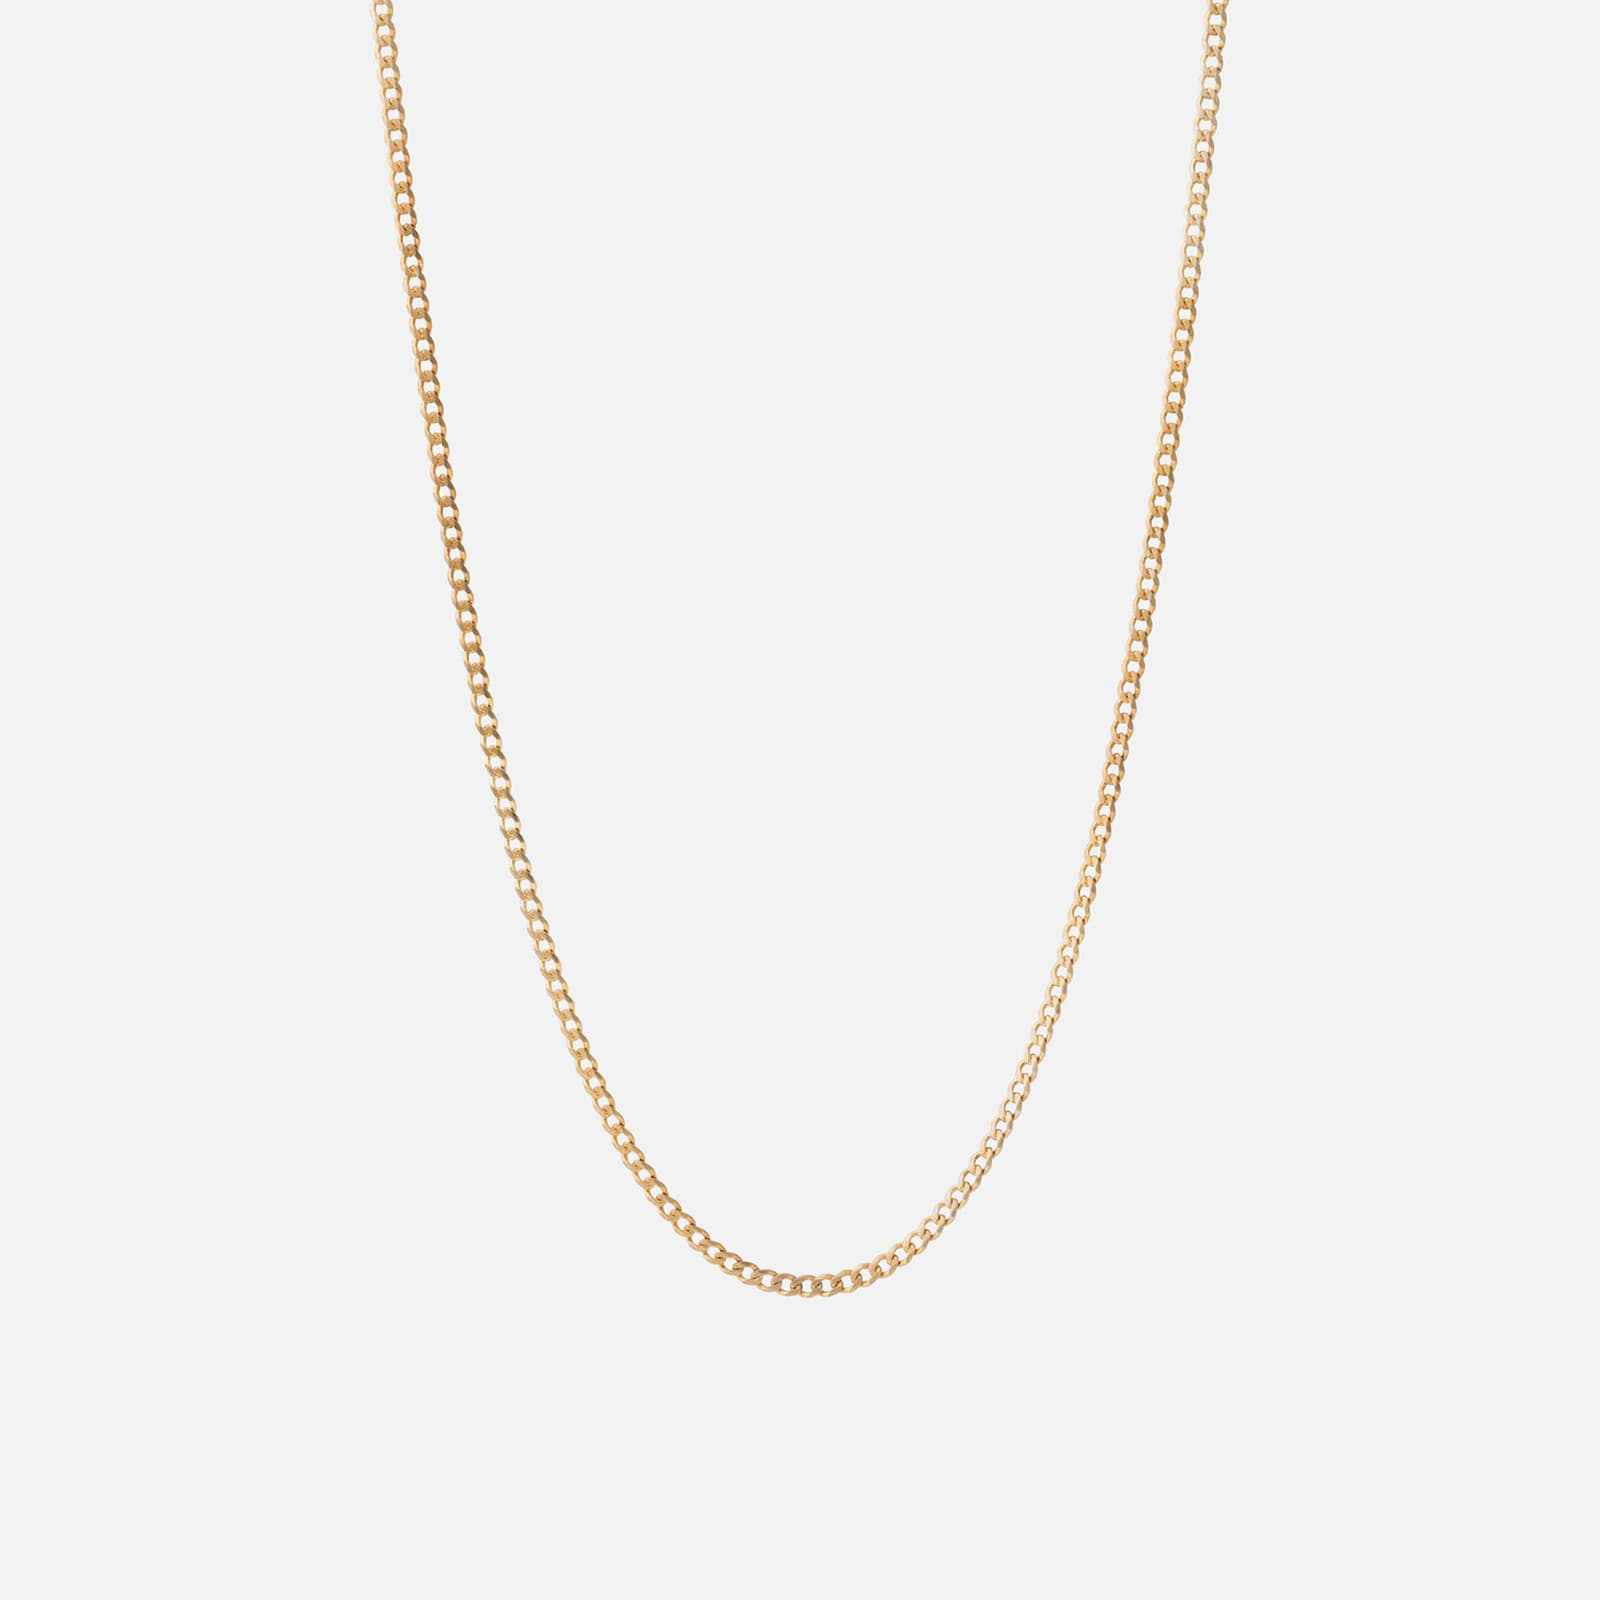 Miansai 3mm Vermeil Chain Necklace